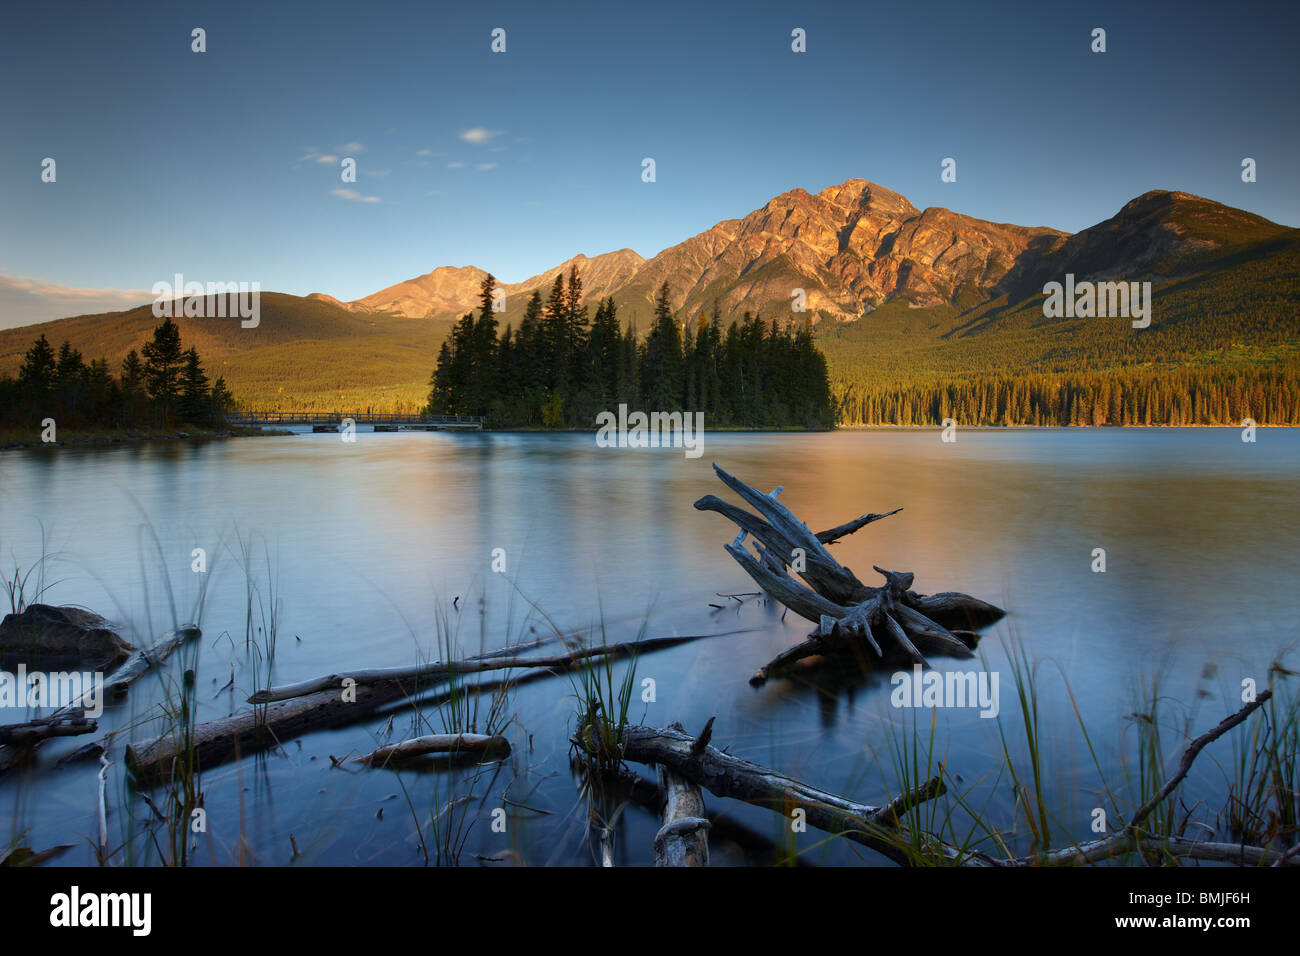 Le Lac Pyramid et la montagne à l'aube, Jasper National Park, Alberta, Canada Photo Stock